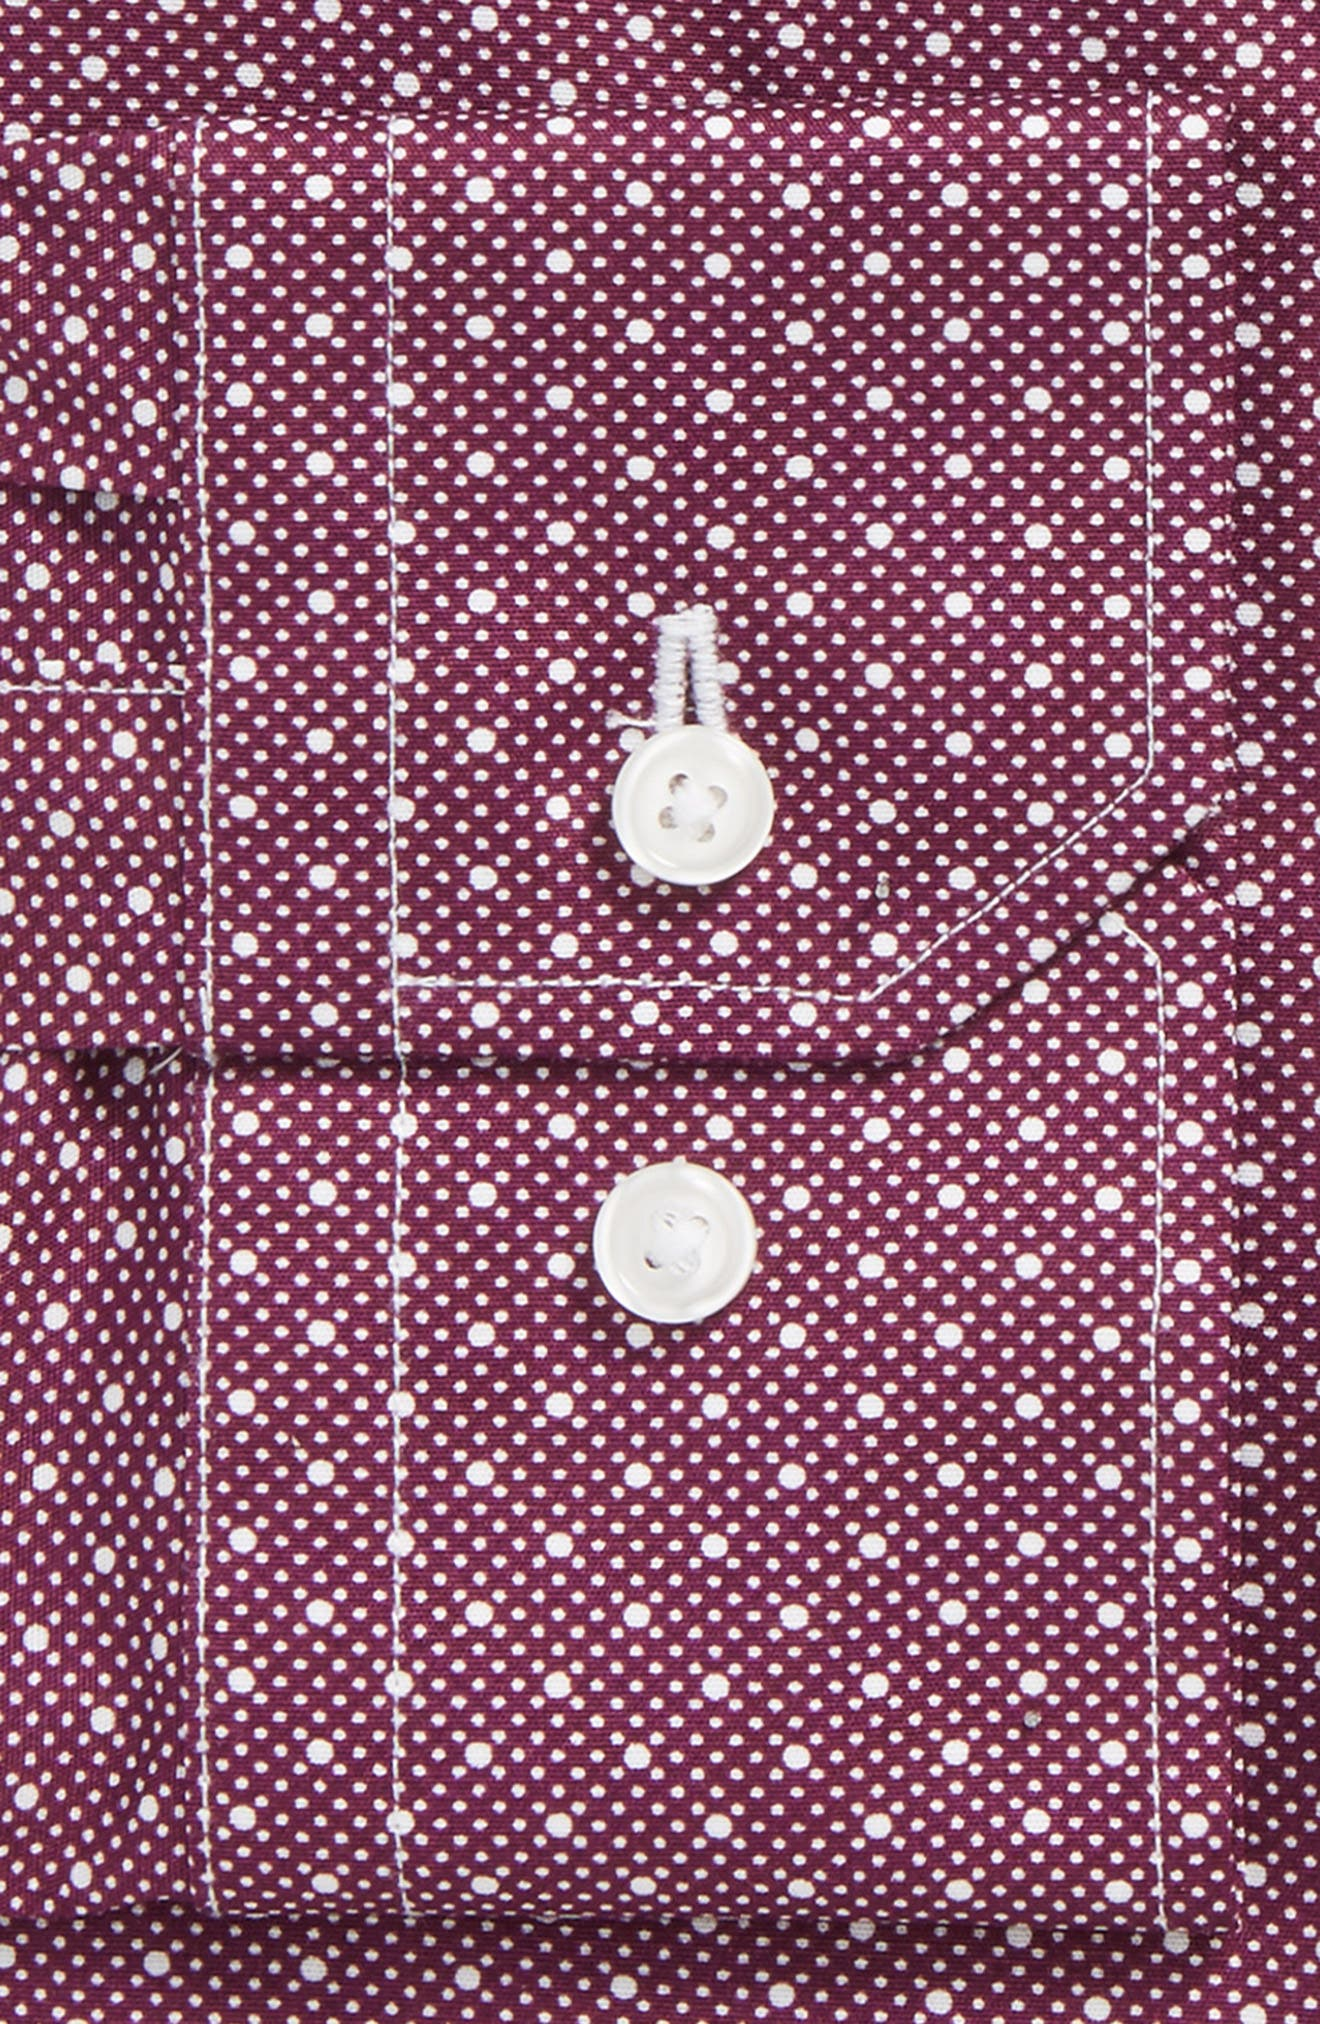 Alternate Image 2  - Calibrate Trim Fit Stretch Dot Dress Shirt